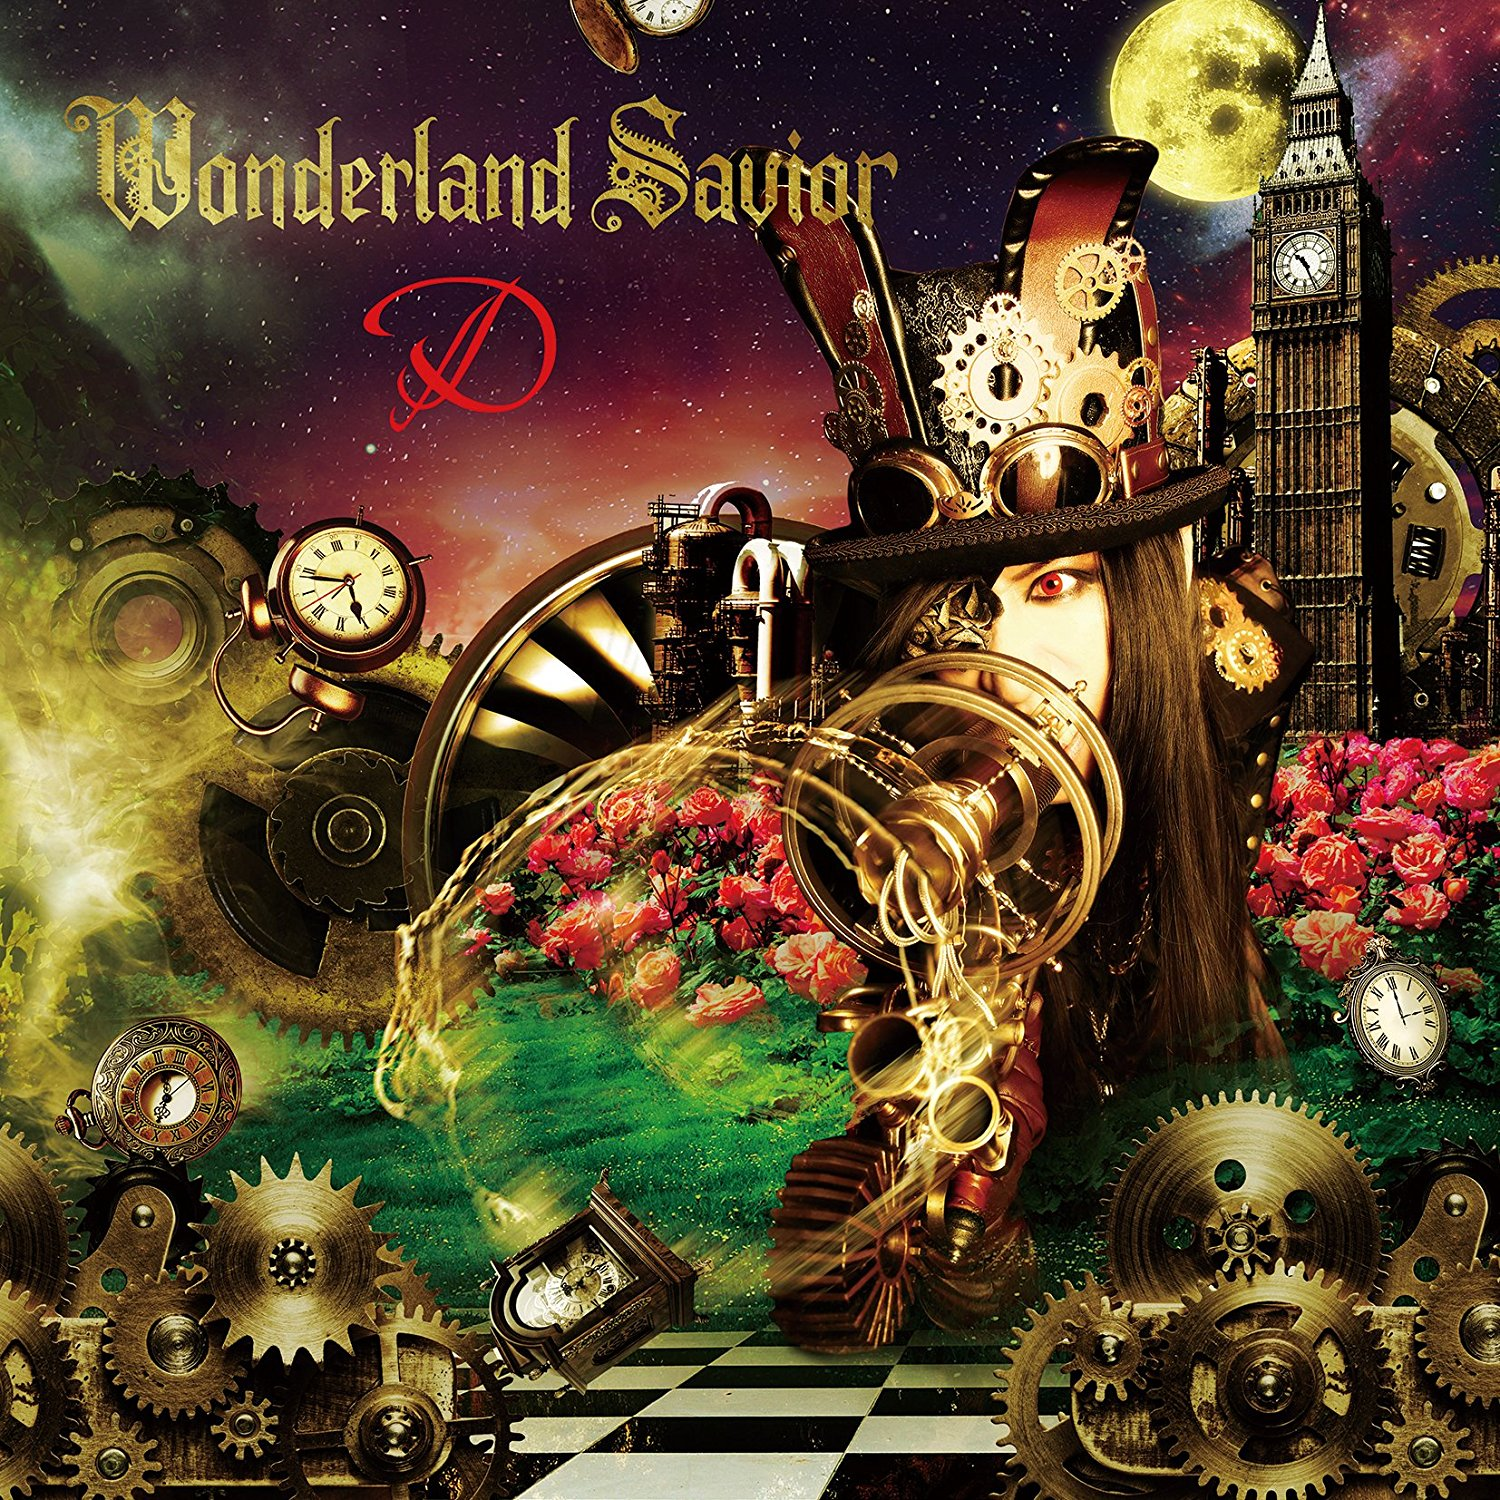 JRock247-D- Wonderland-Savior-best-cover